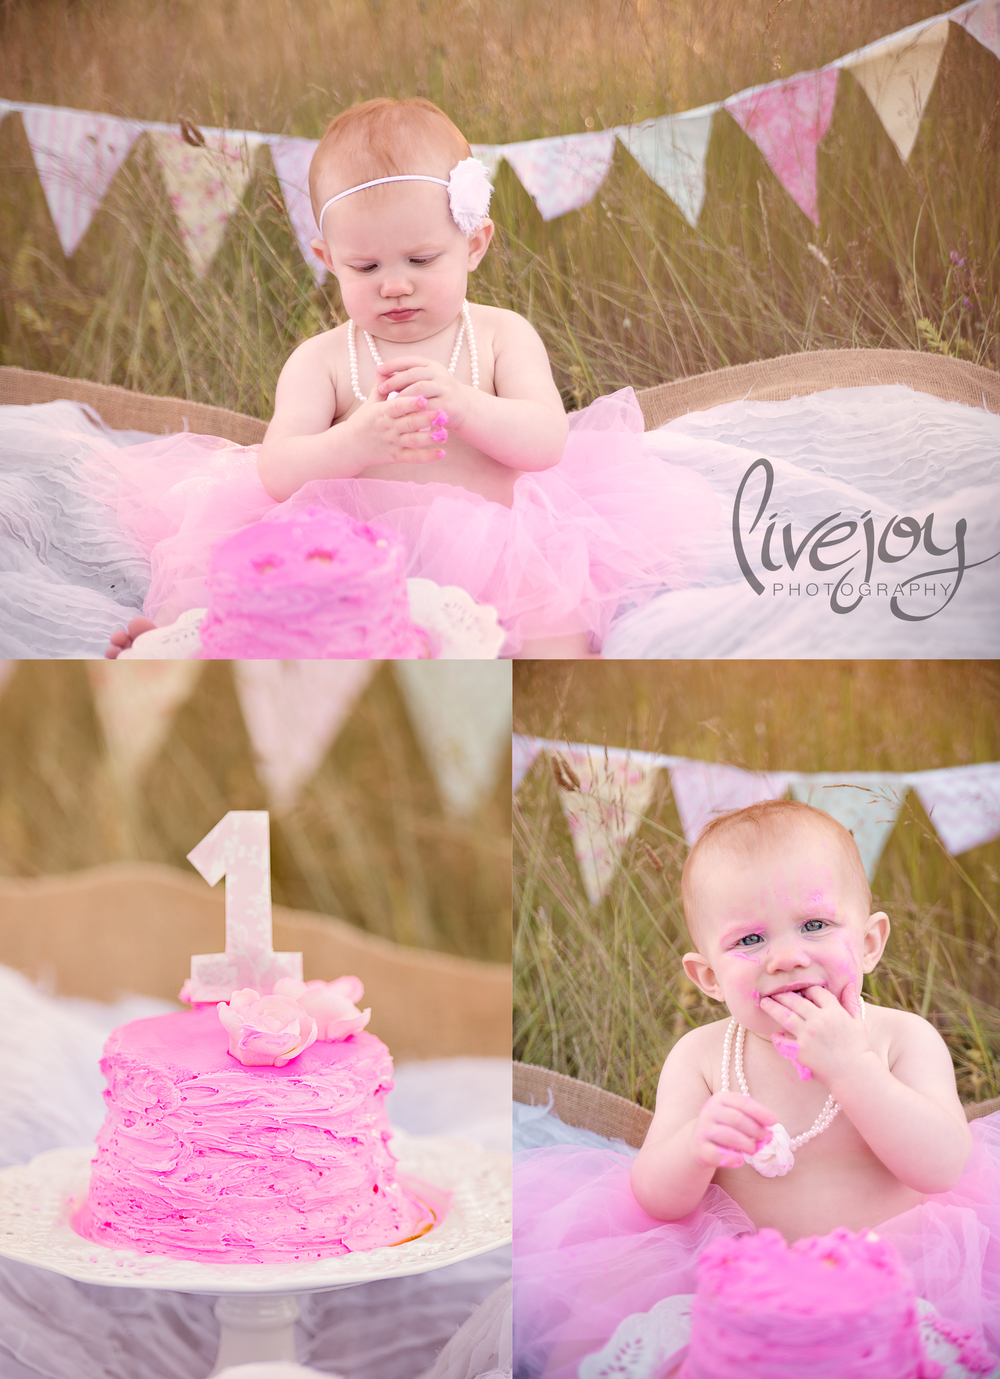 1 Year Baby Photography Cake Smash | LiveJoy Photography | Oregon